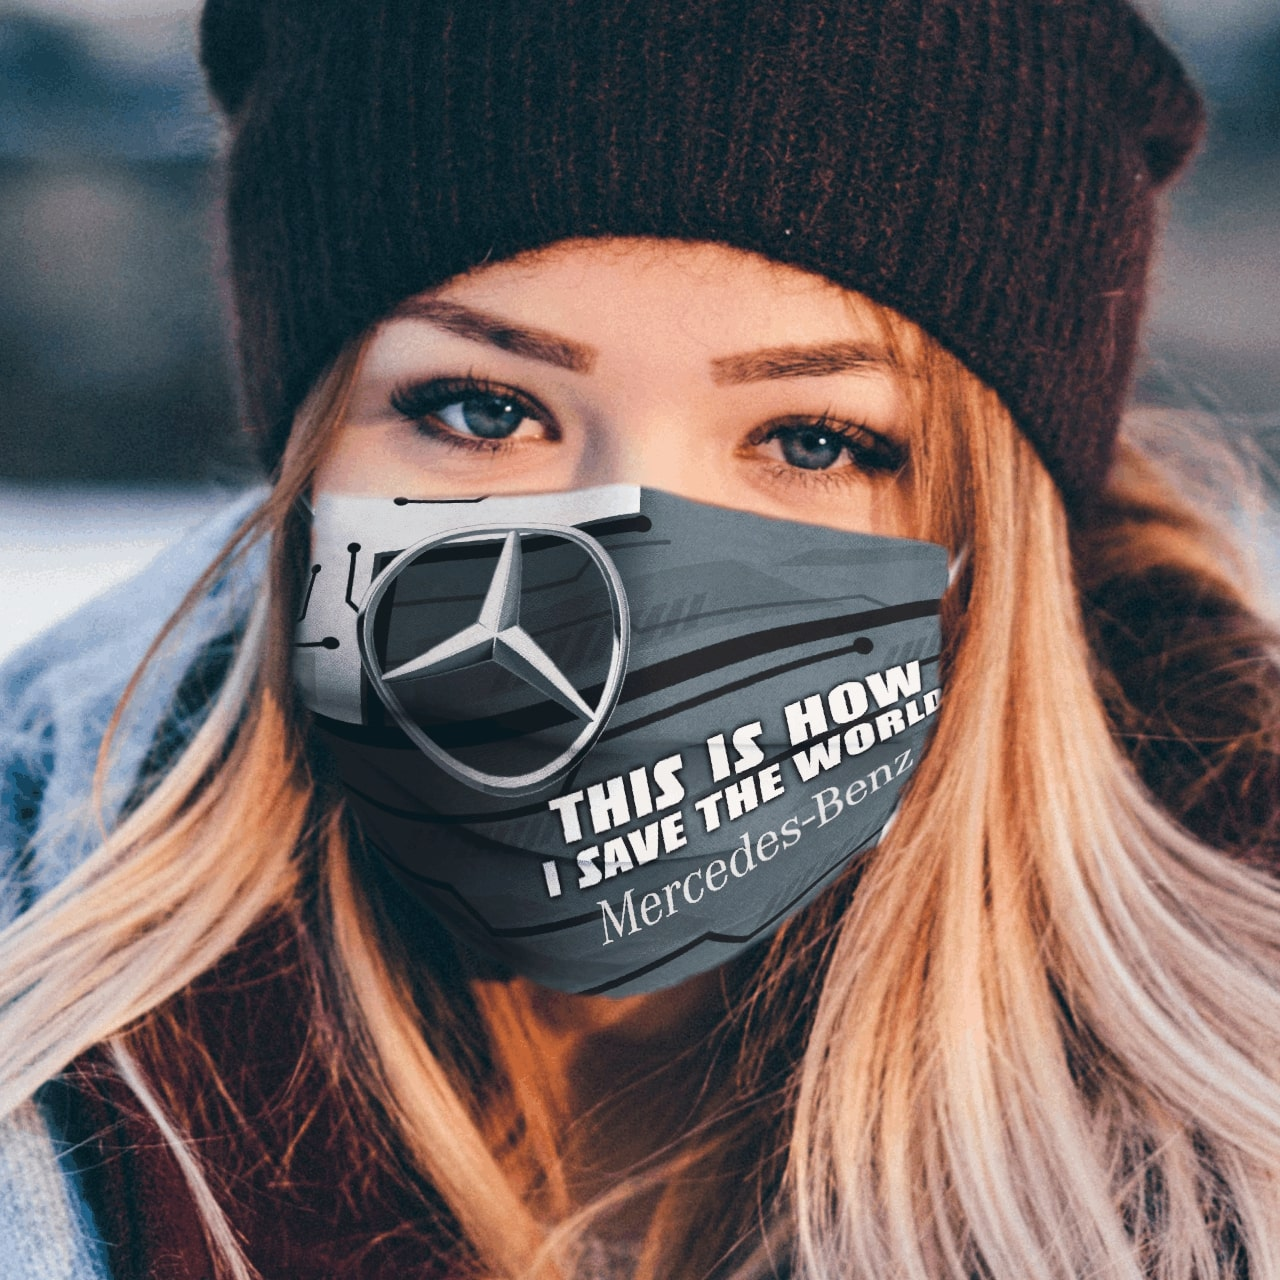 This is how i save the world mercedes-benz full printing face mask 2